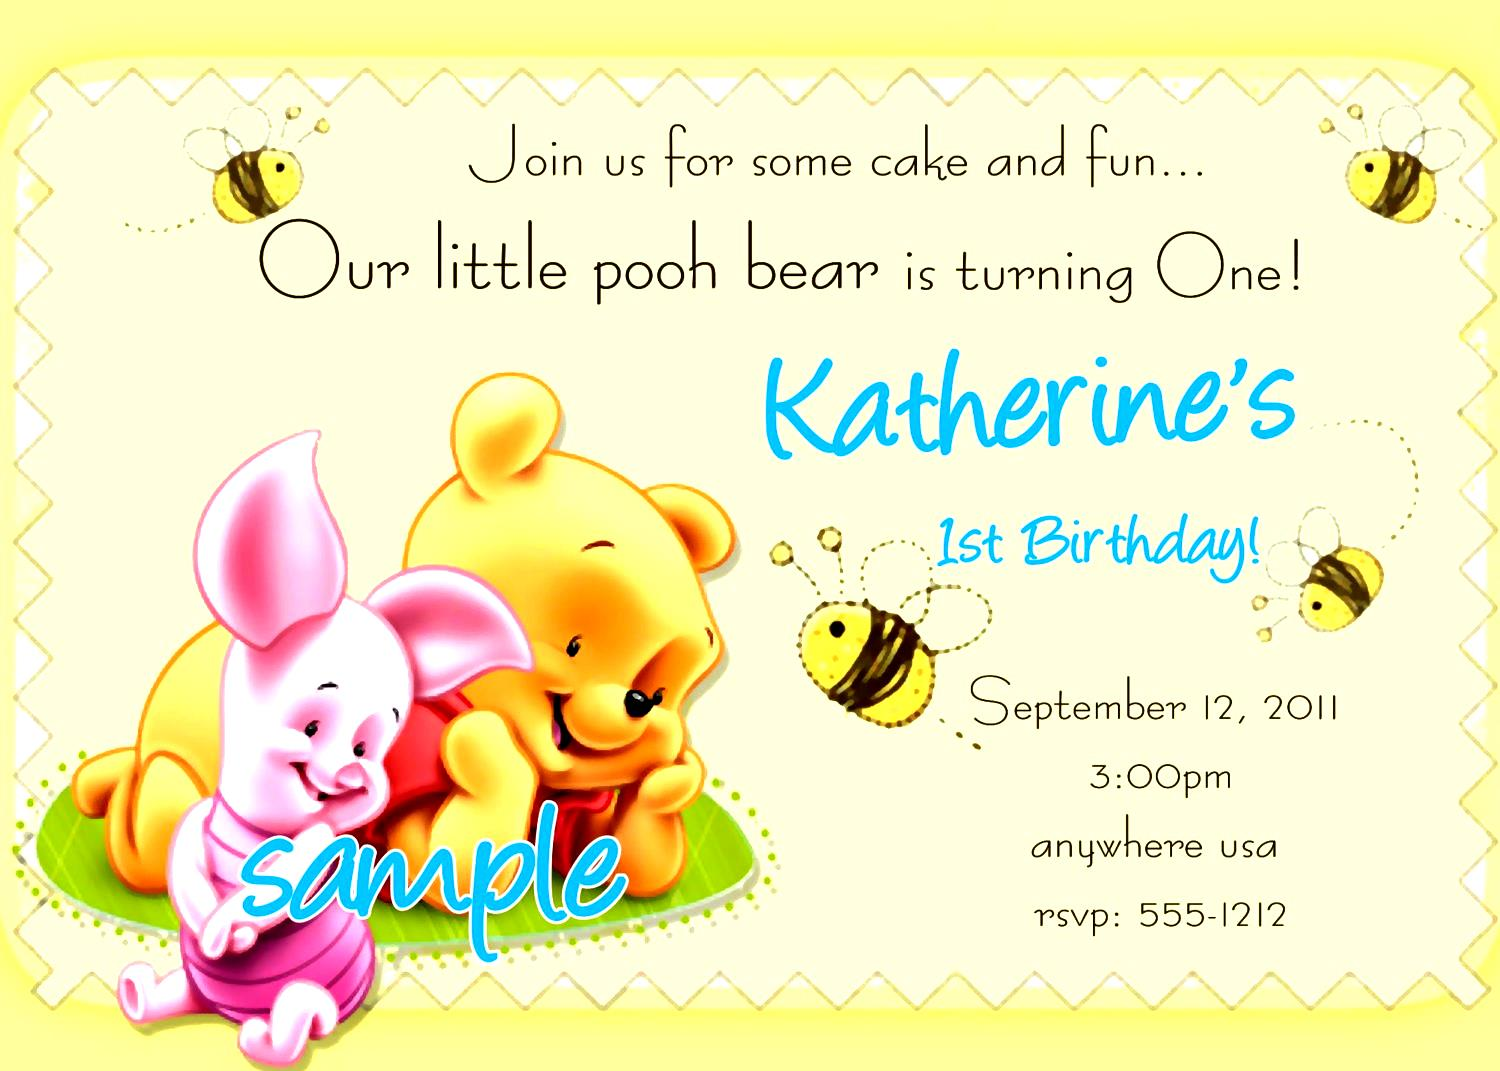 21+ Kids Birthday Invitation Wording That We Can Make. Resume Template High School No Experience Template. Chess Score Sheet Fsblm. A Resignation Letter Format. Weekly Work Schedule Template Free Template. Sample Job Description Office Manager Template. Guest Speaker Flyer Example. Resume Summary For It Professional Template. Sample Of Cleaning Schedule Checklist Template